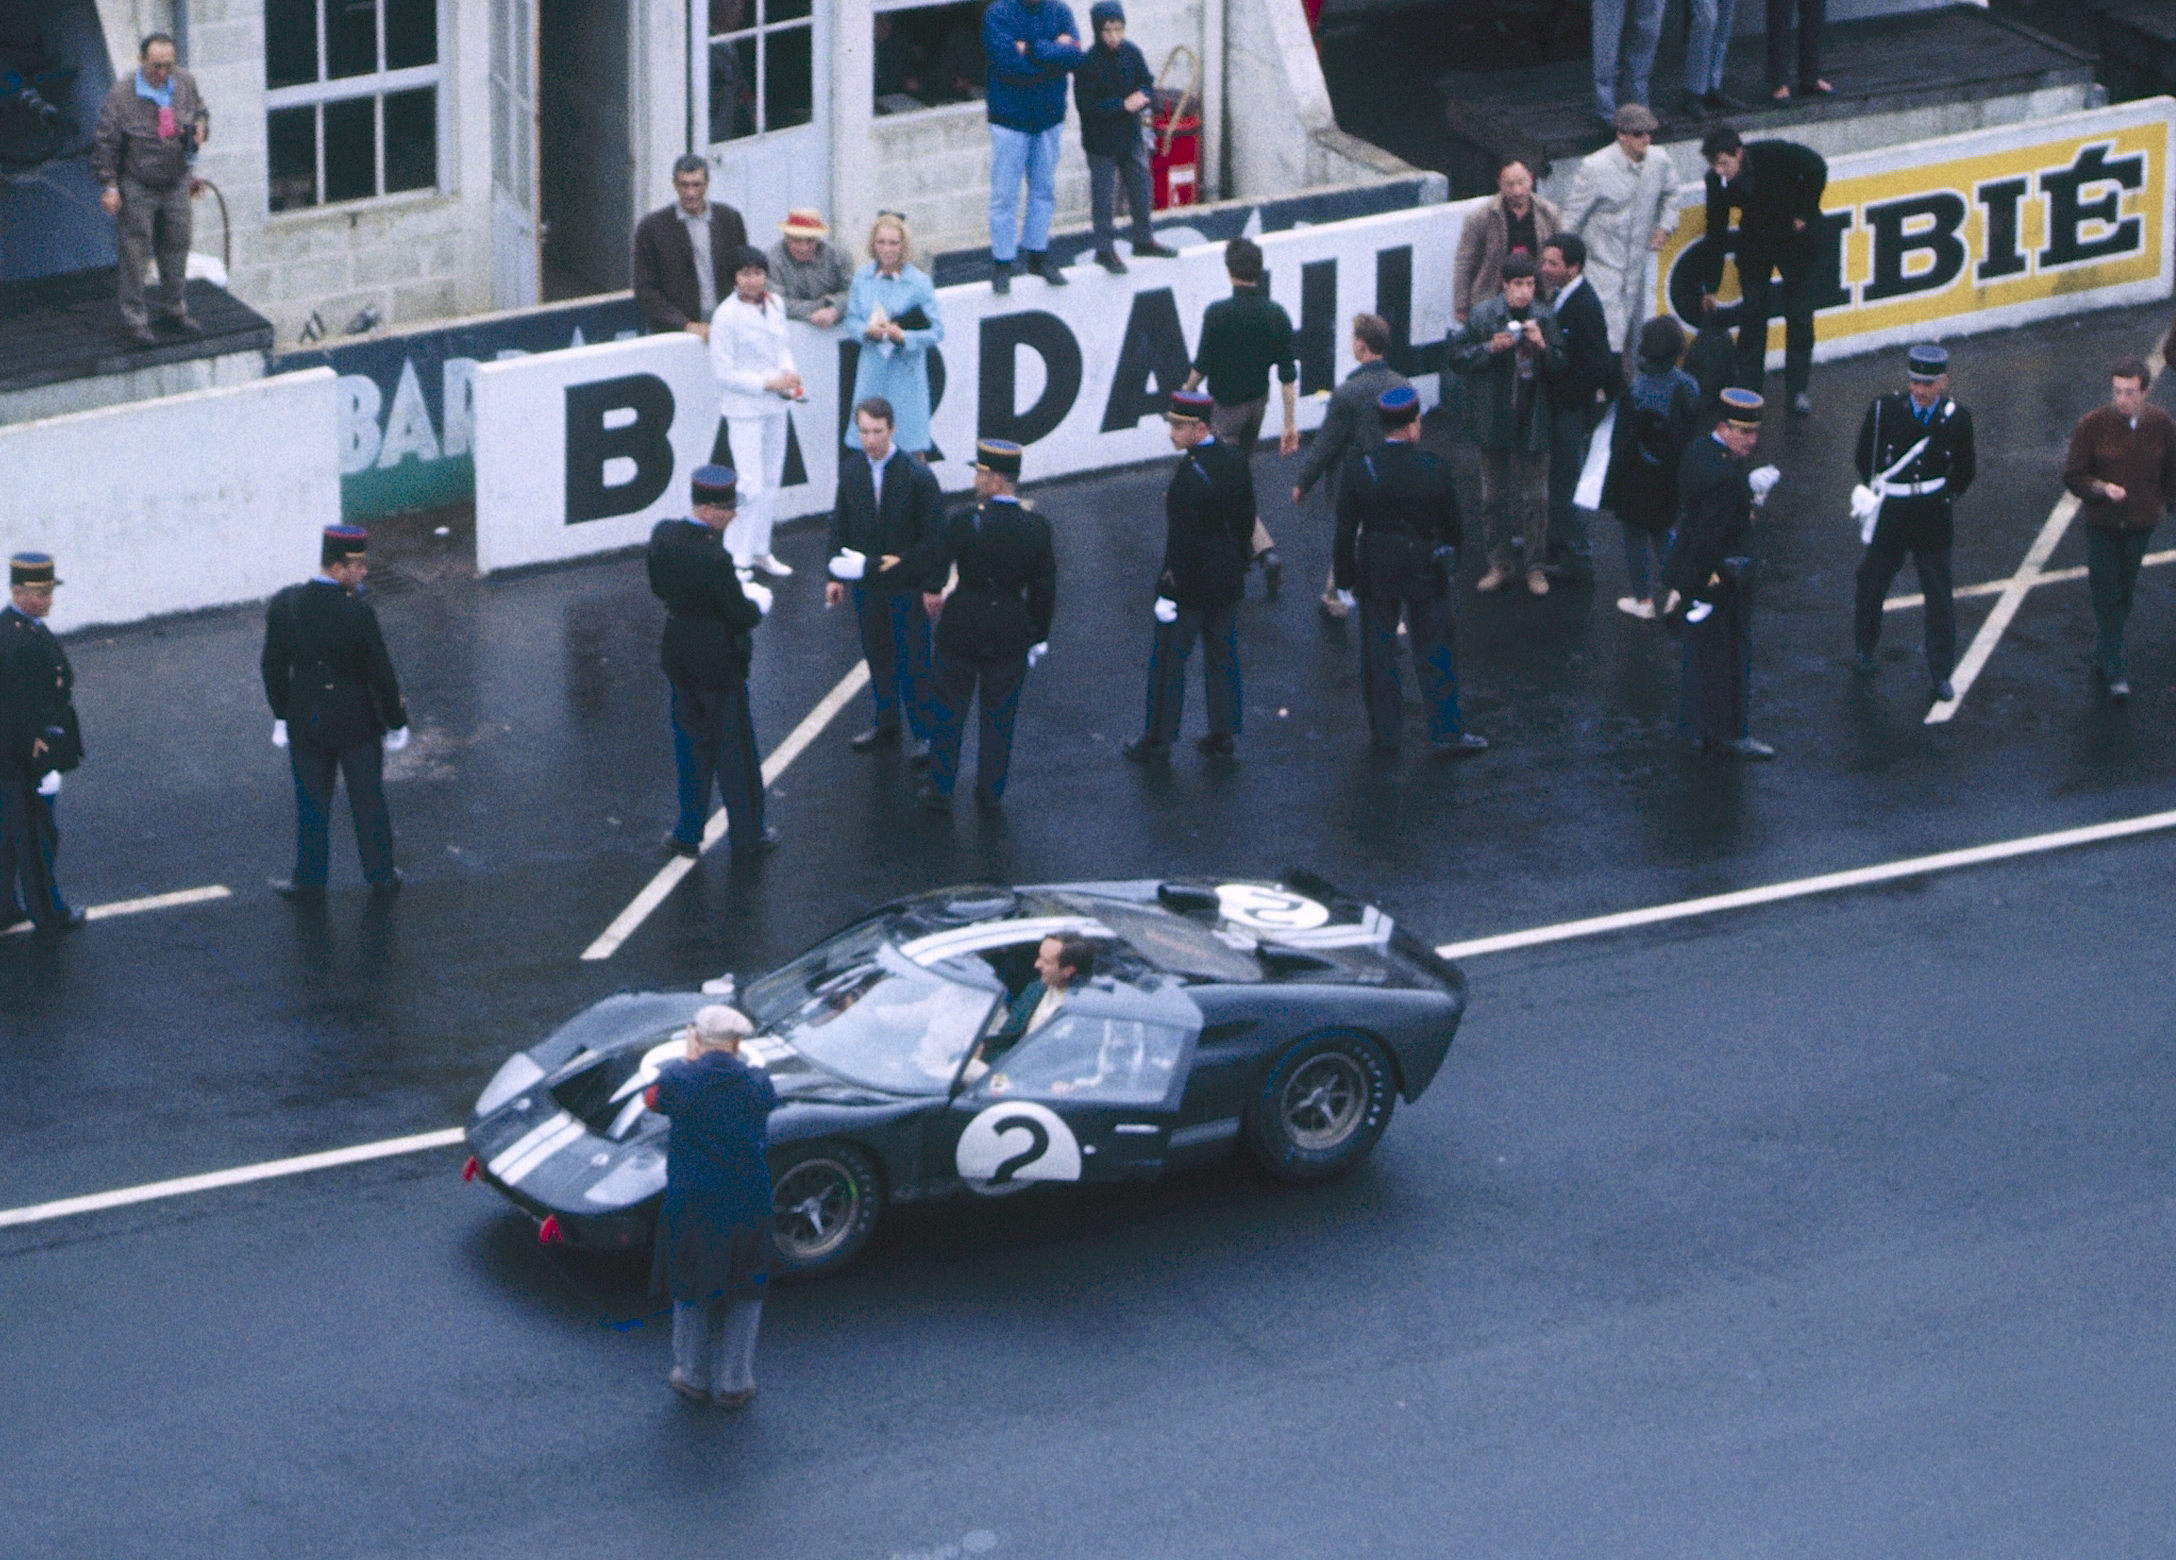 Ford swept the 1966 LeMans with a one-two-three victory led by this GT40 driven by Bruce McLaren and Chris Amon. That's Amon in the car just after the win.